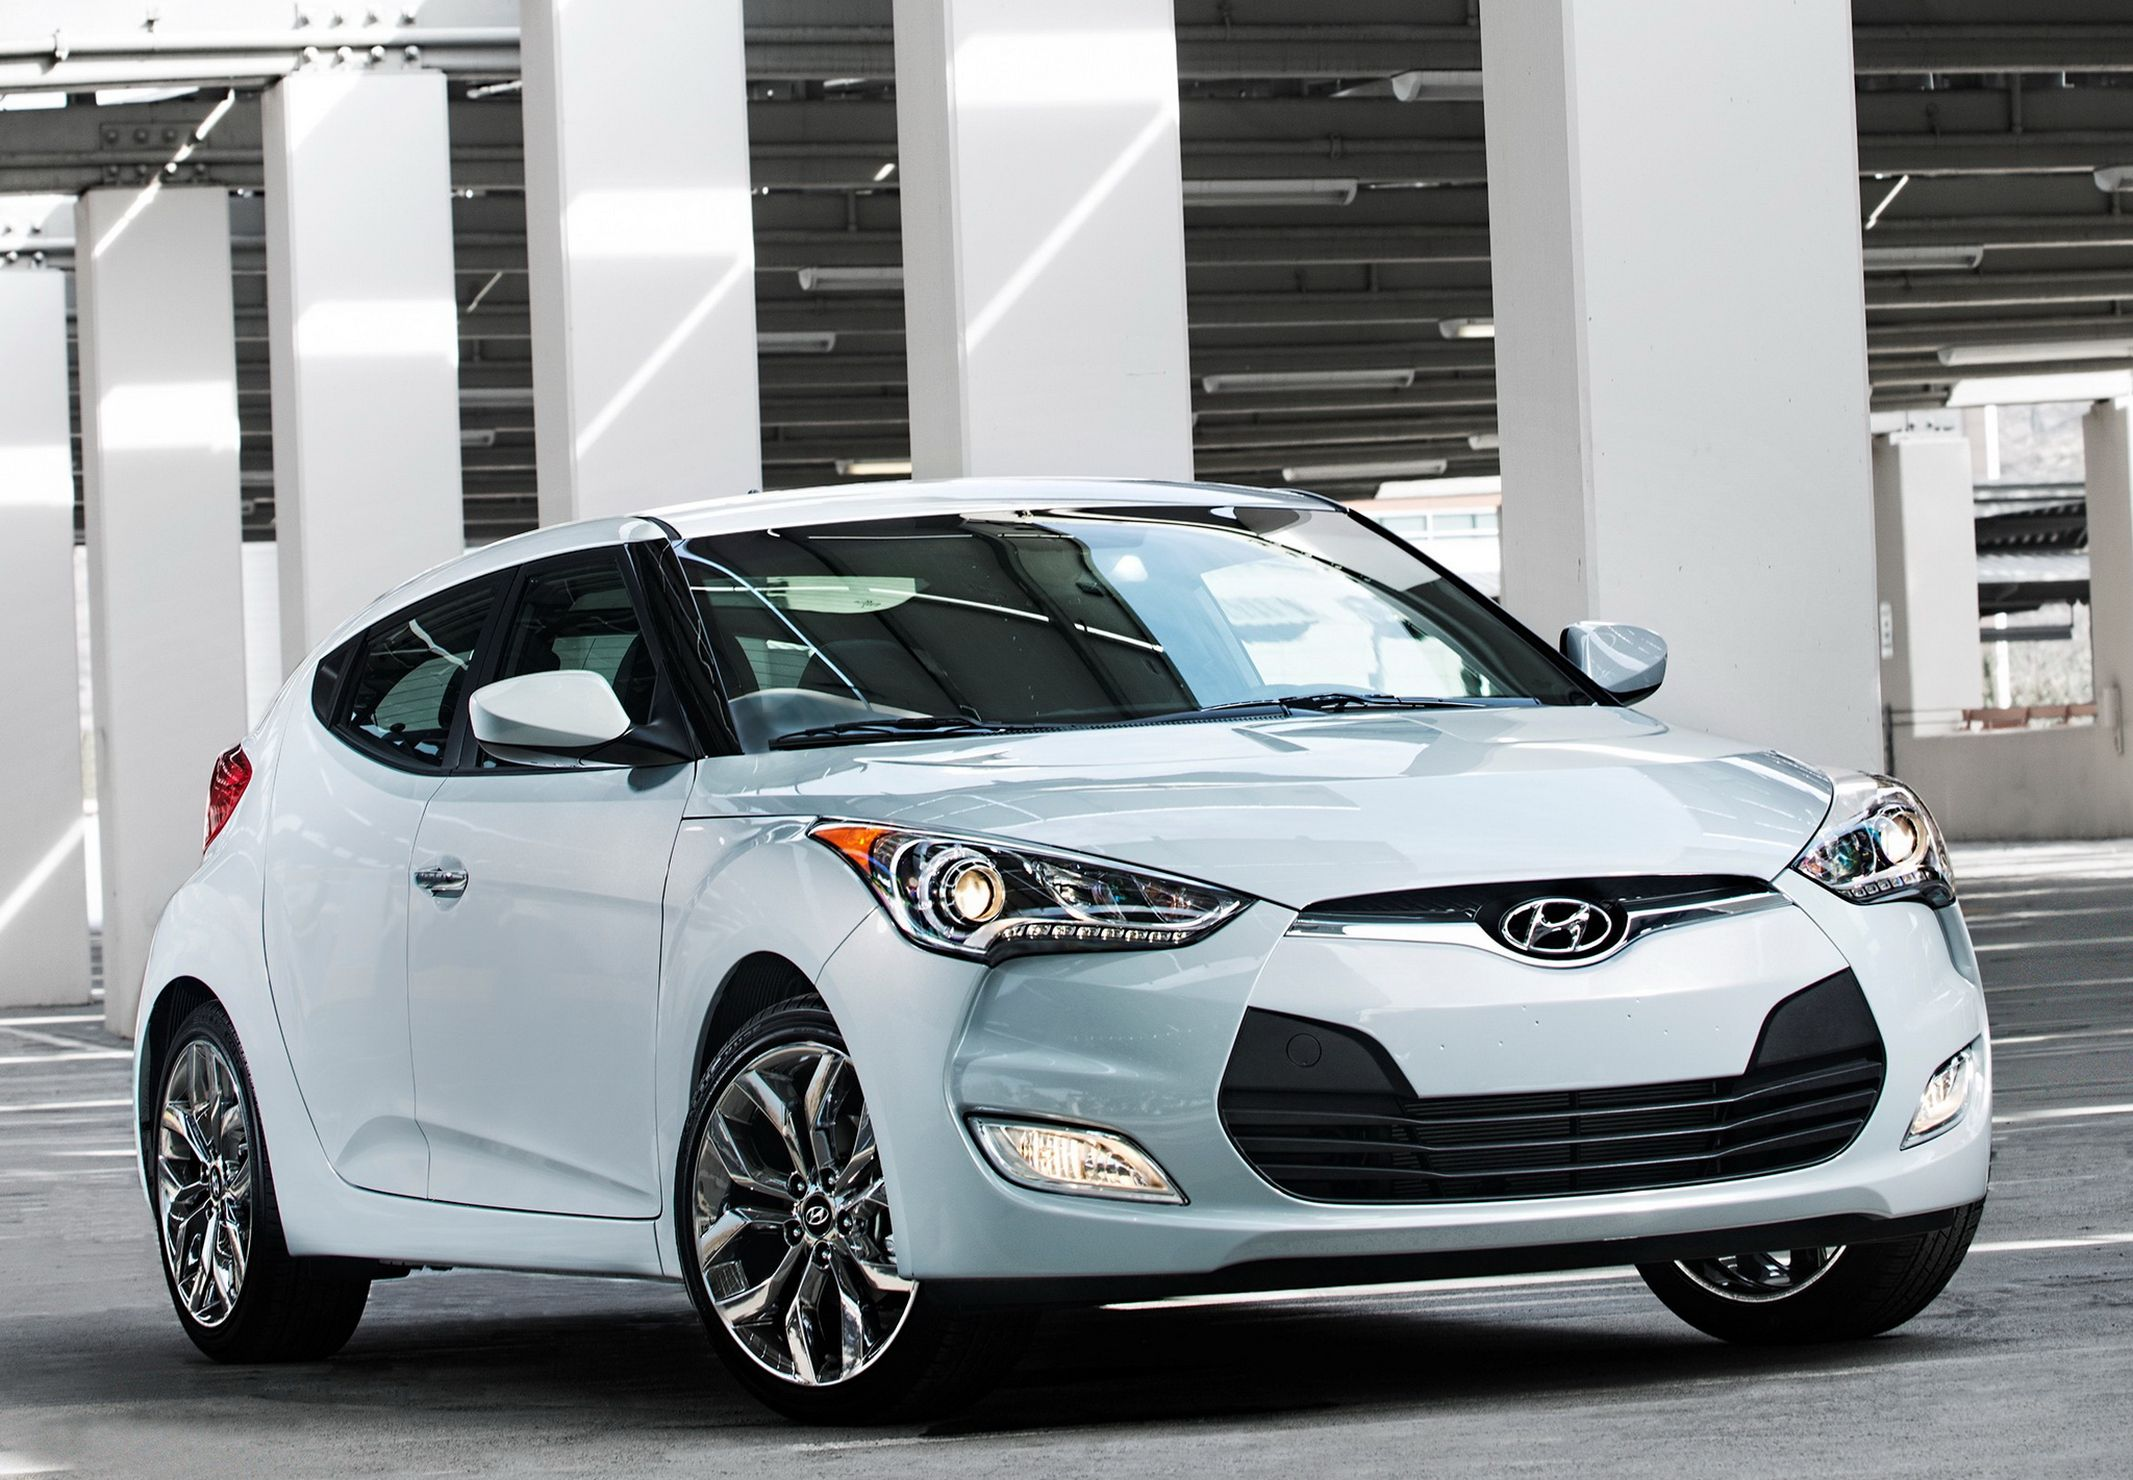 Hyundai Veloster Reflex Wallpapers and Background Images   stmednet 2133x1480